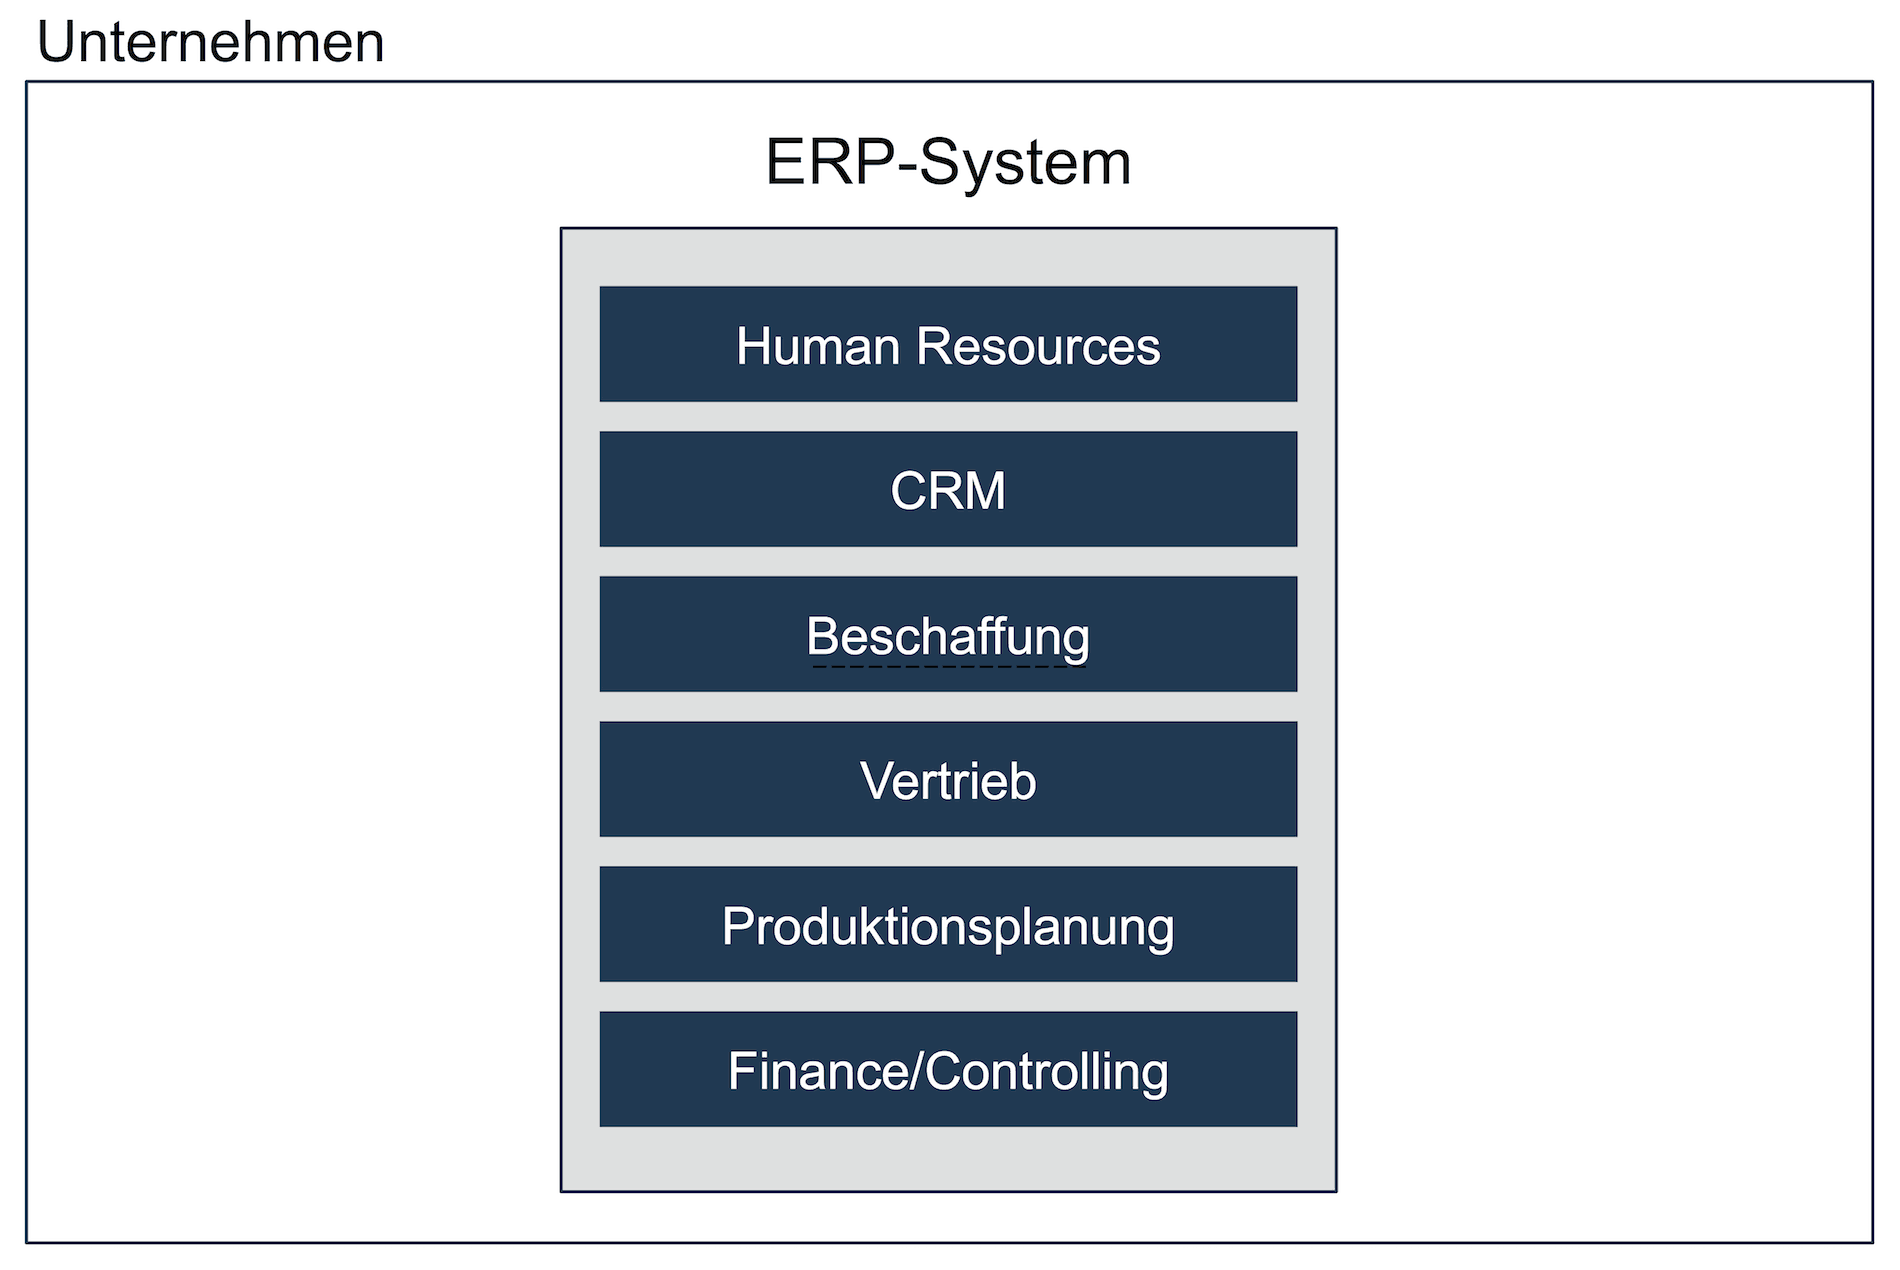 ERP-System der Generation 1 - Software Monolith